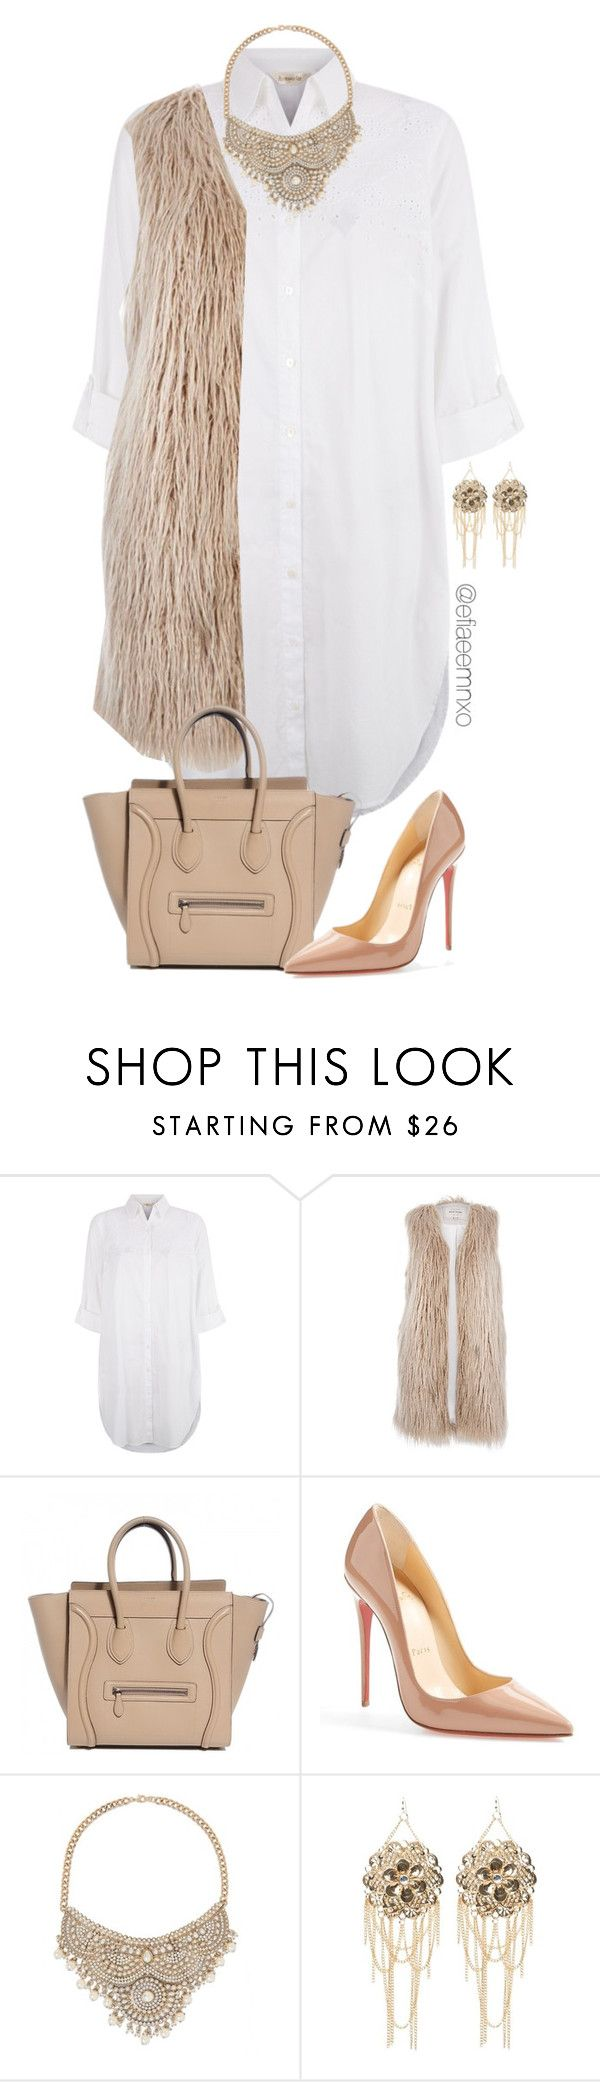 """""""You faux real?"""" by efiaeemnxo ❤ liked on Polyvore featuring Monsoon, River Island, Christian Louboutin and Bebe"""